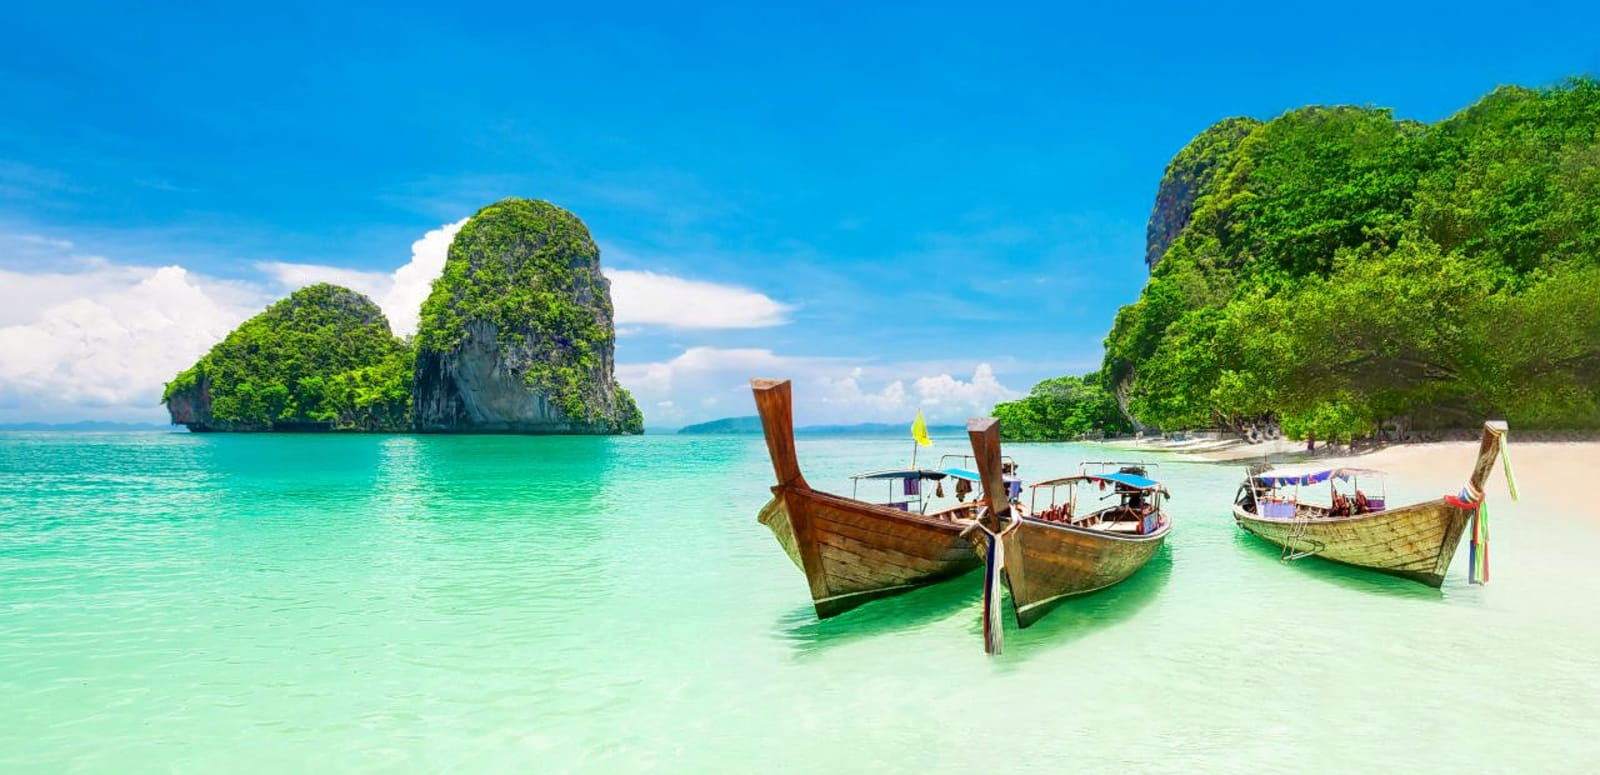 101 Places to Visit in Thailand 2019 (6200+ Reviews & Photos)